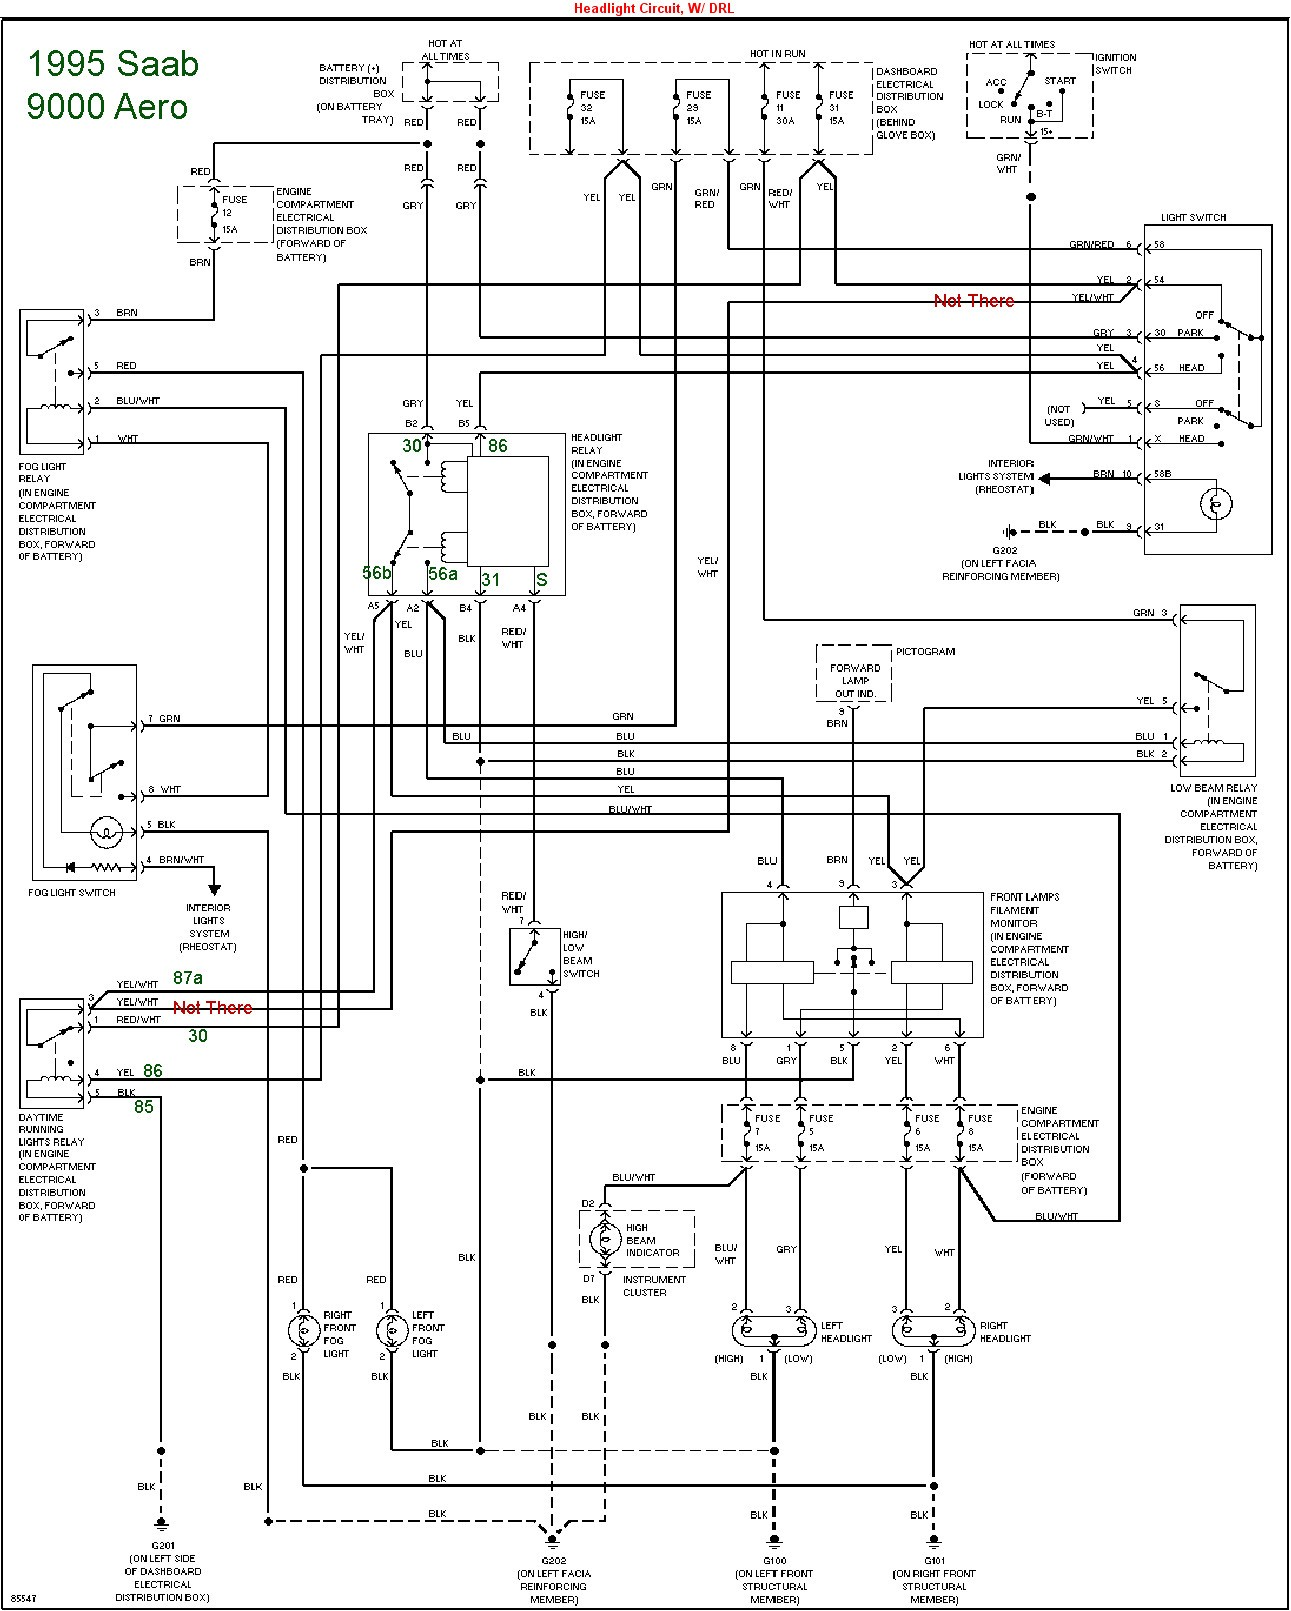 saab 93 wiring diagram schematic wiring diagrams u2022 rh detox design co Saab 9-3 2003 Front Headlight Wiring Diagram Saab 9 3 Electric Diagram